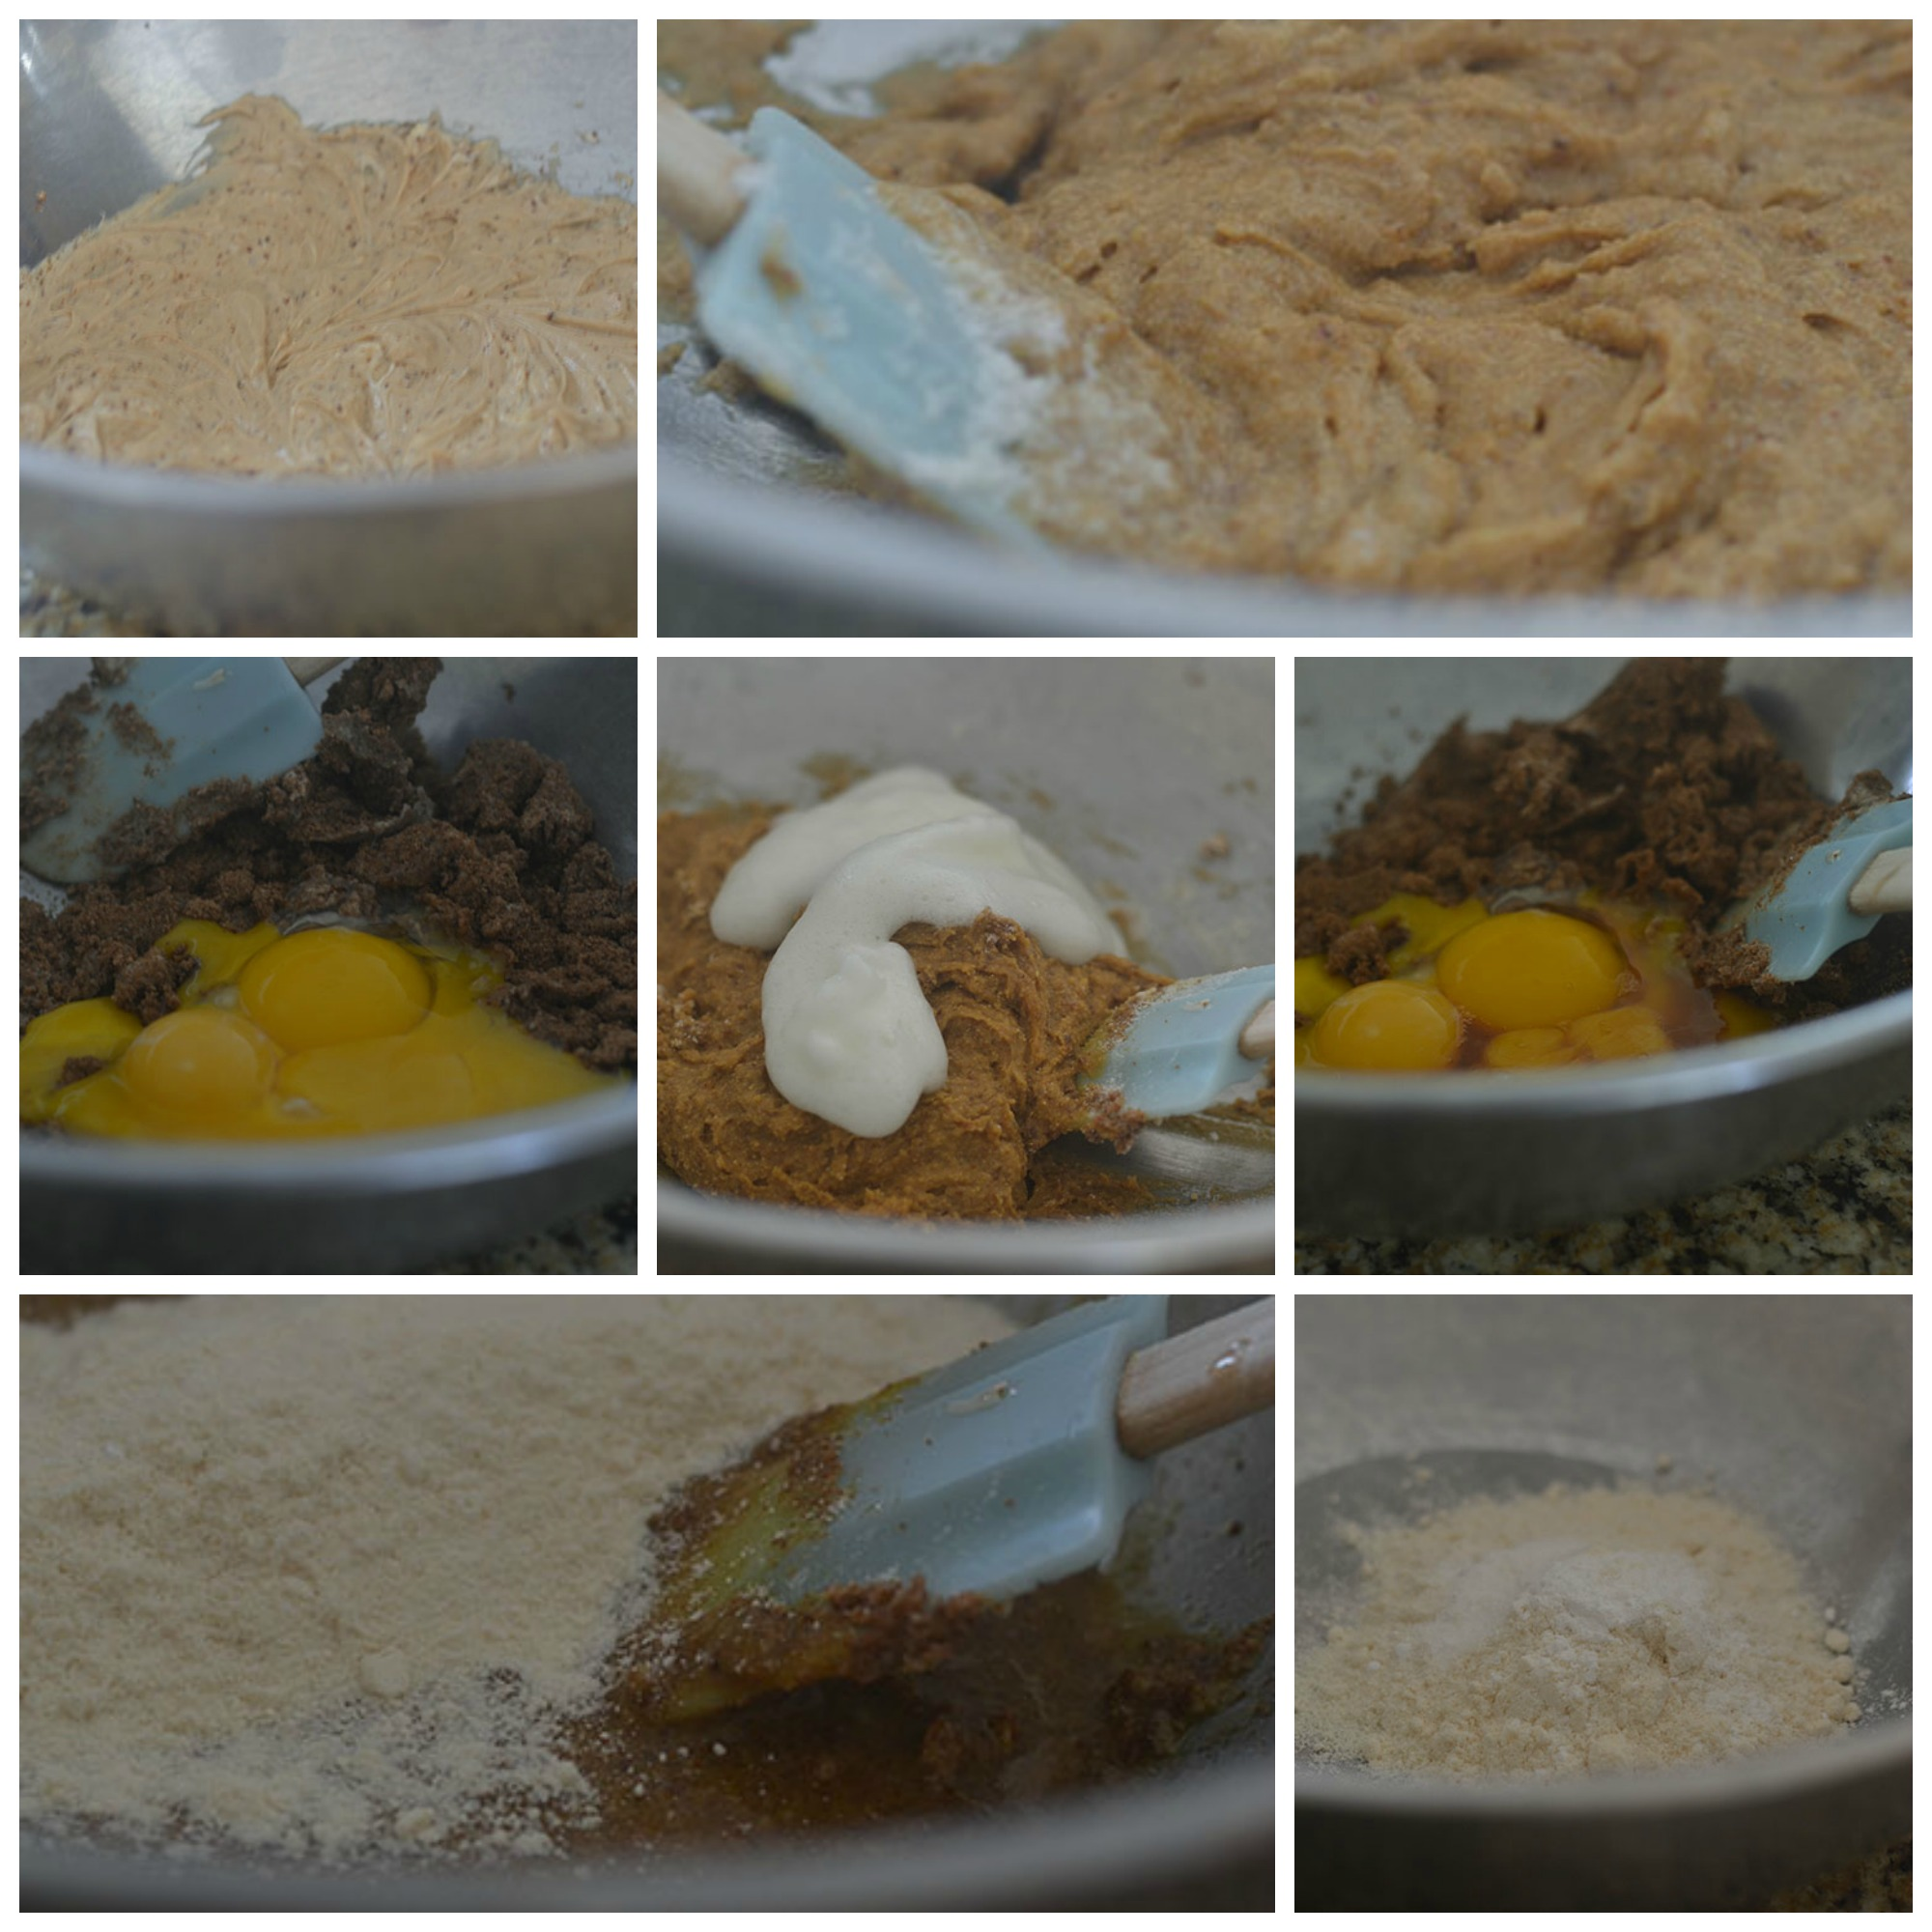 Mixing and Development of the Gluten Free Cake Layer